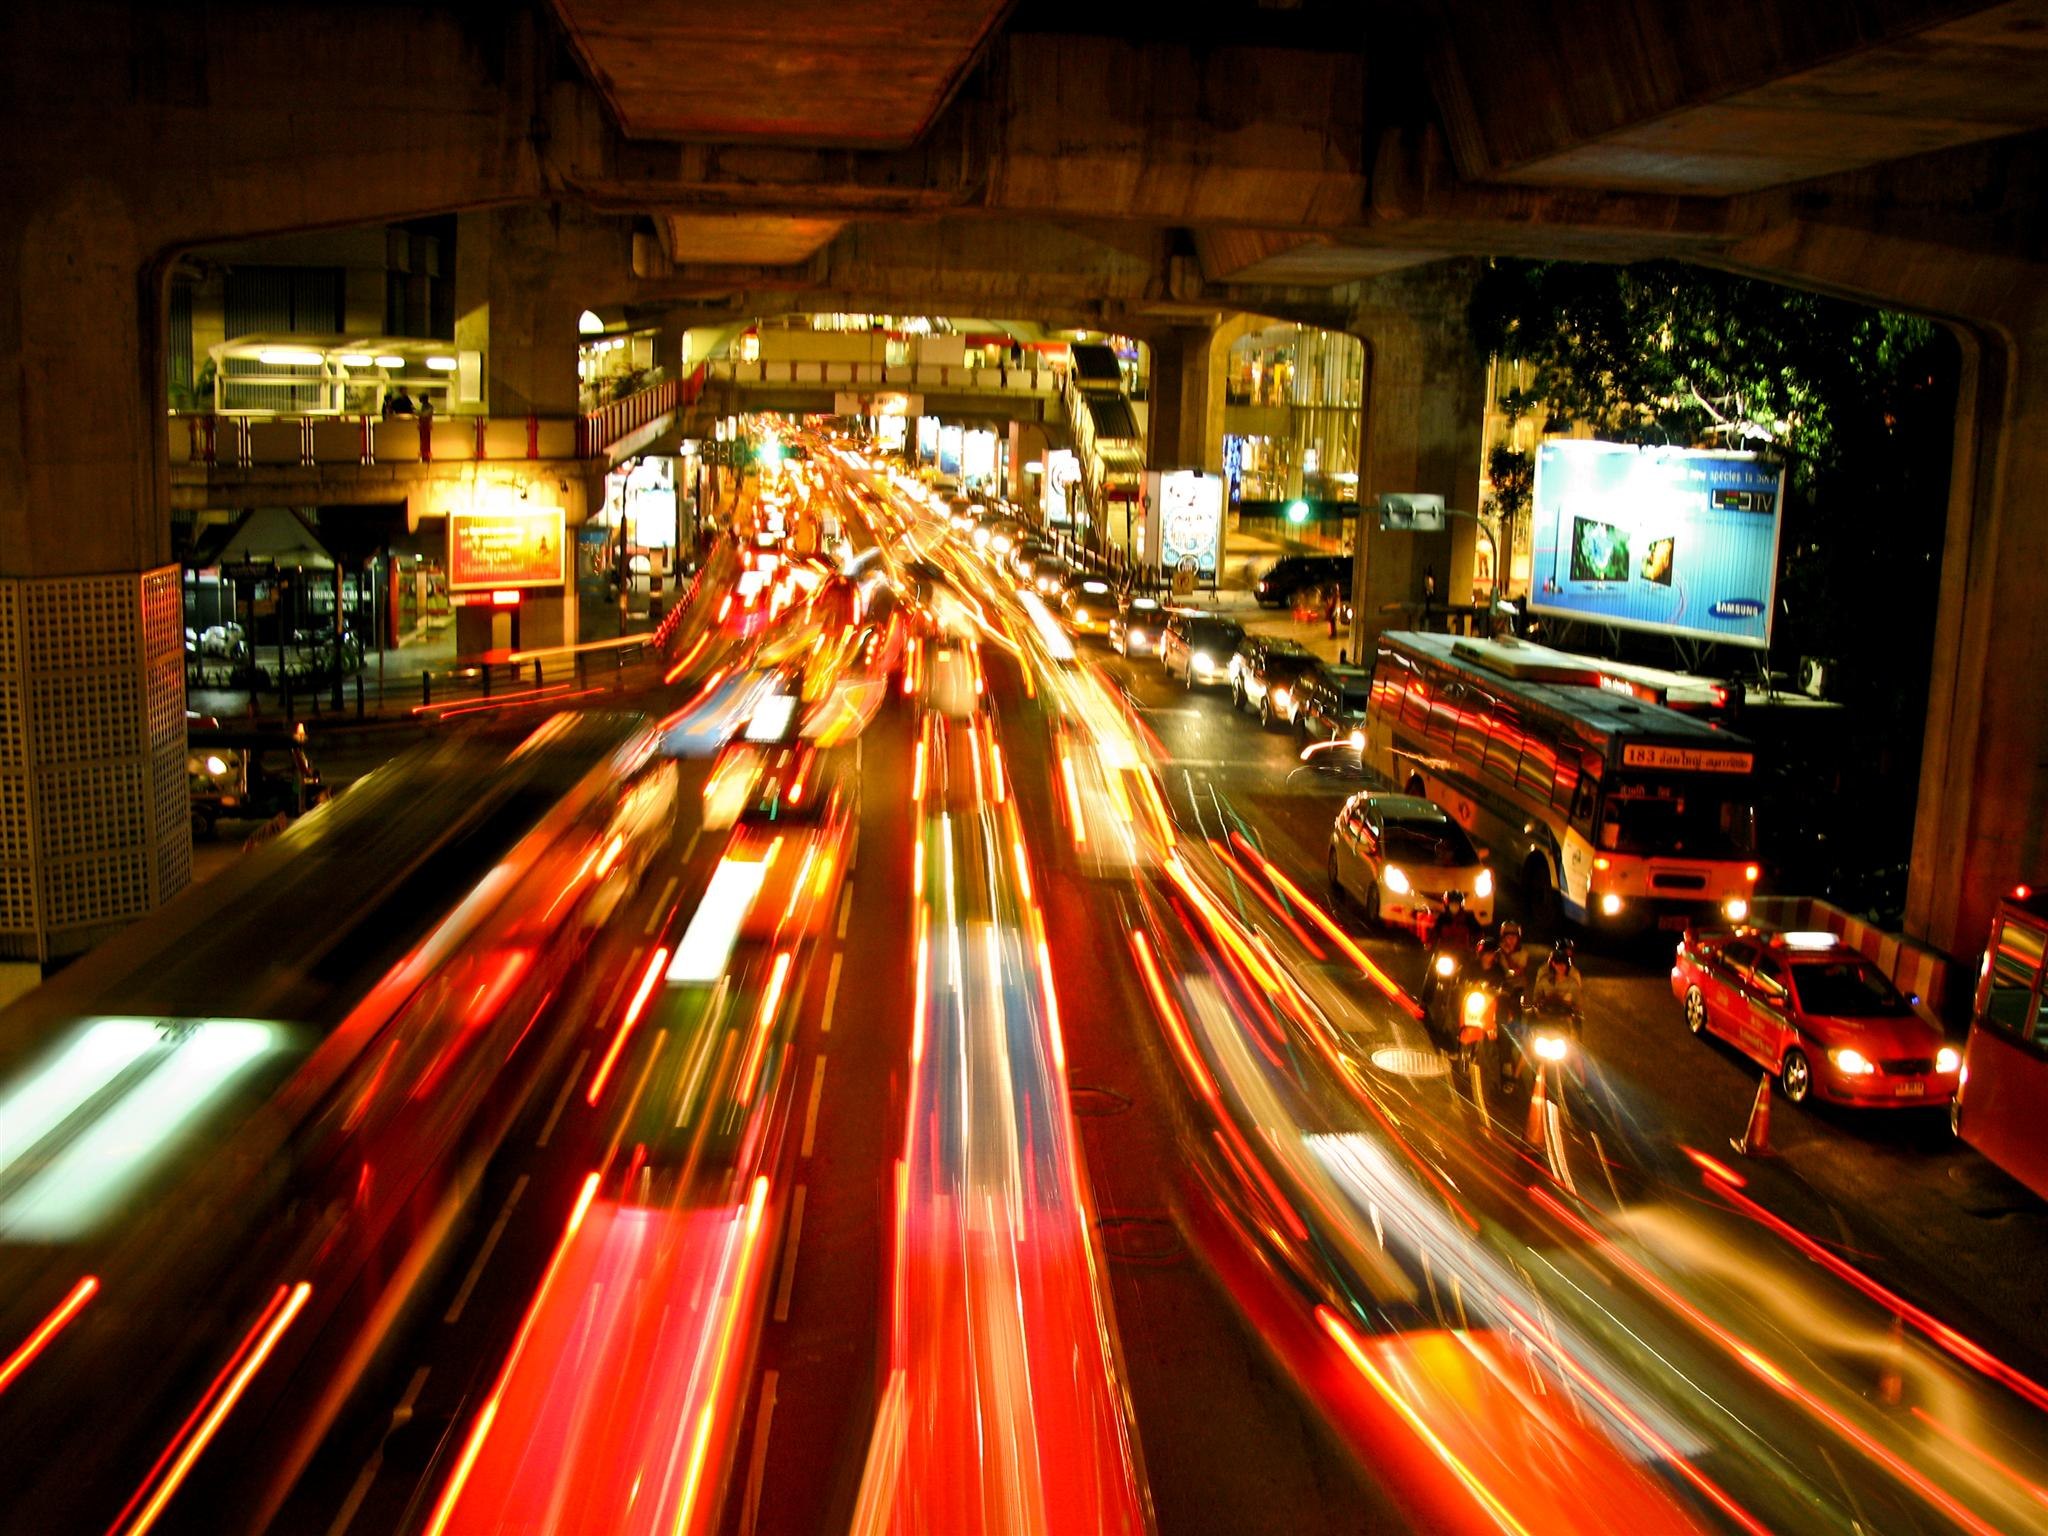 imagining the future of energy and transportation